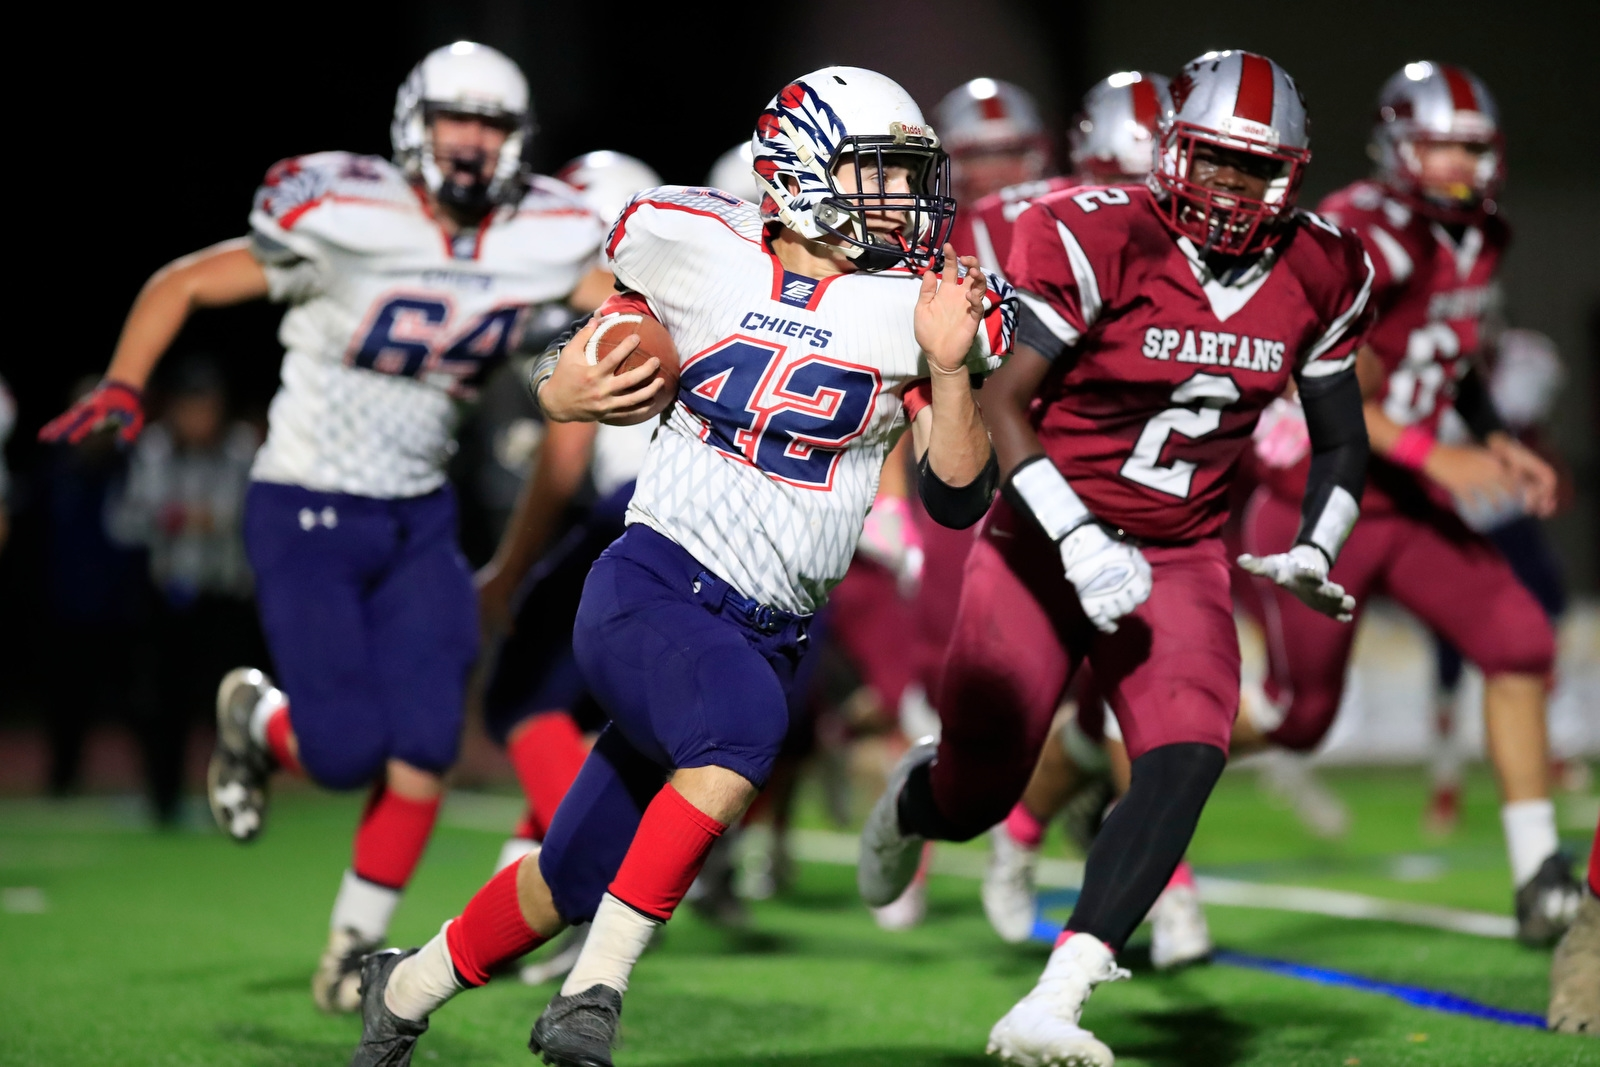 Iroquois C.J. Perillo runs against Starpoint during first half action at Starpoint high school on Friday, Oct. 20, 2017.